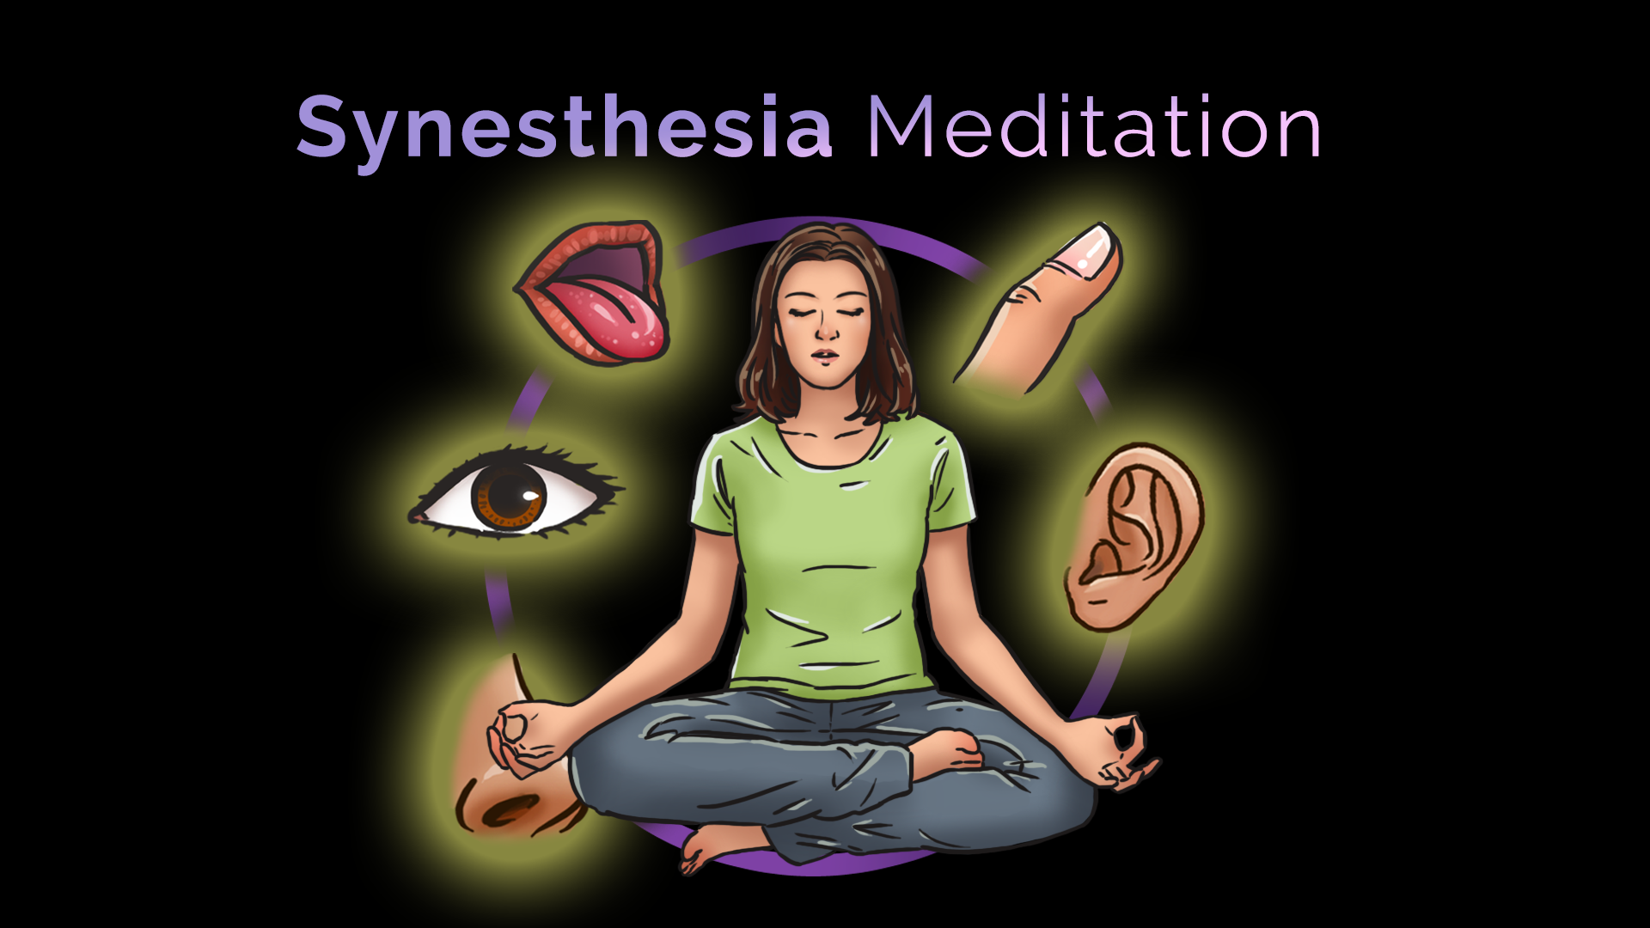 Synesthesia Meditation is a Mix between traditional midnfulness and synesthetic explorations. It involves all your senses.